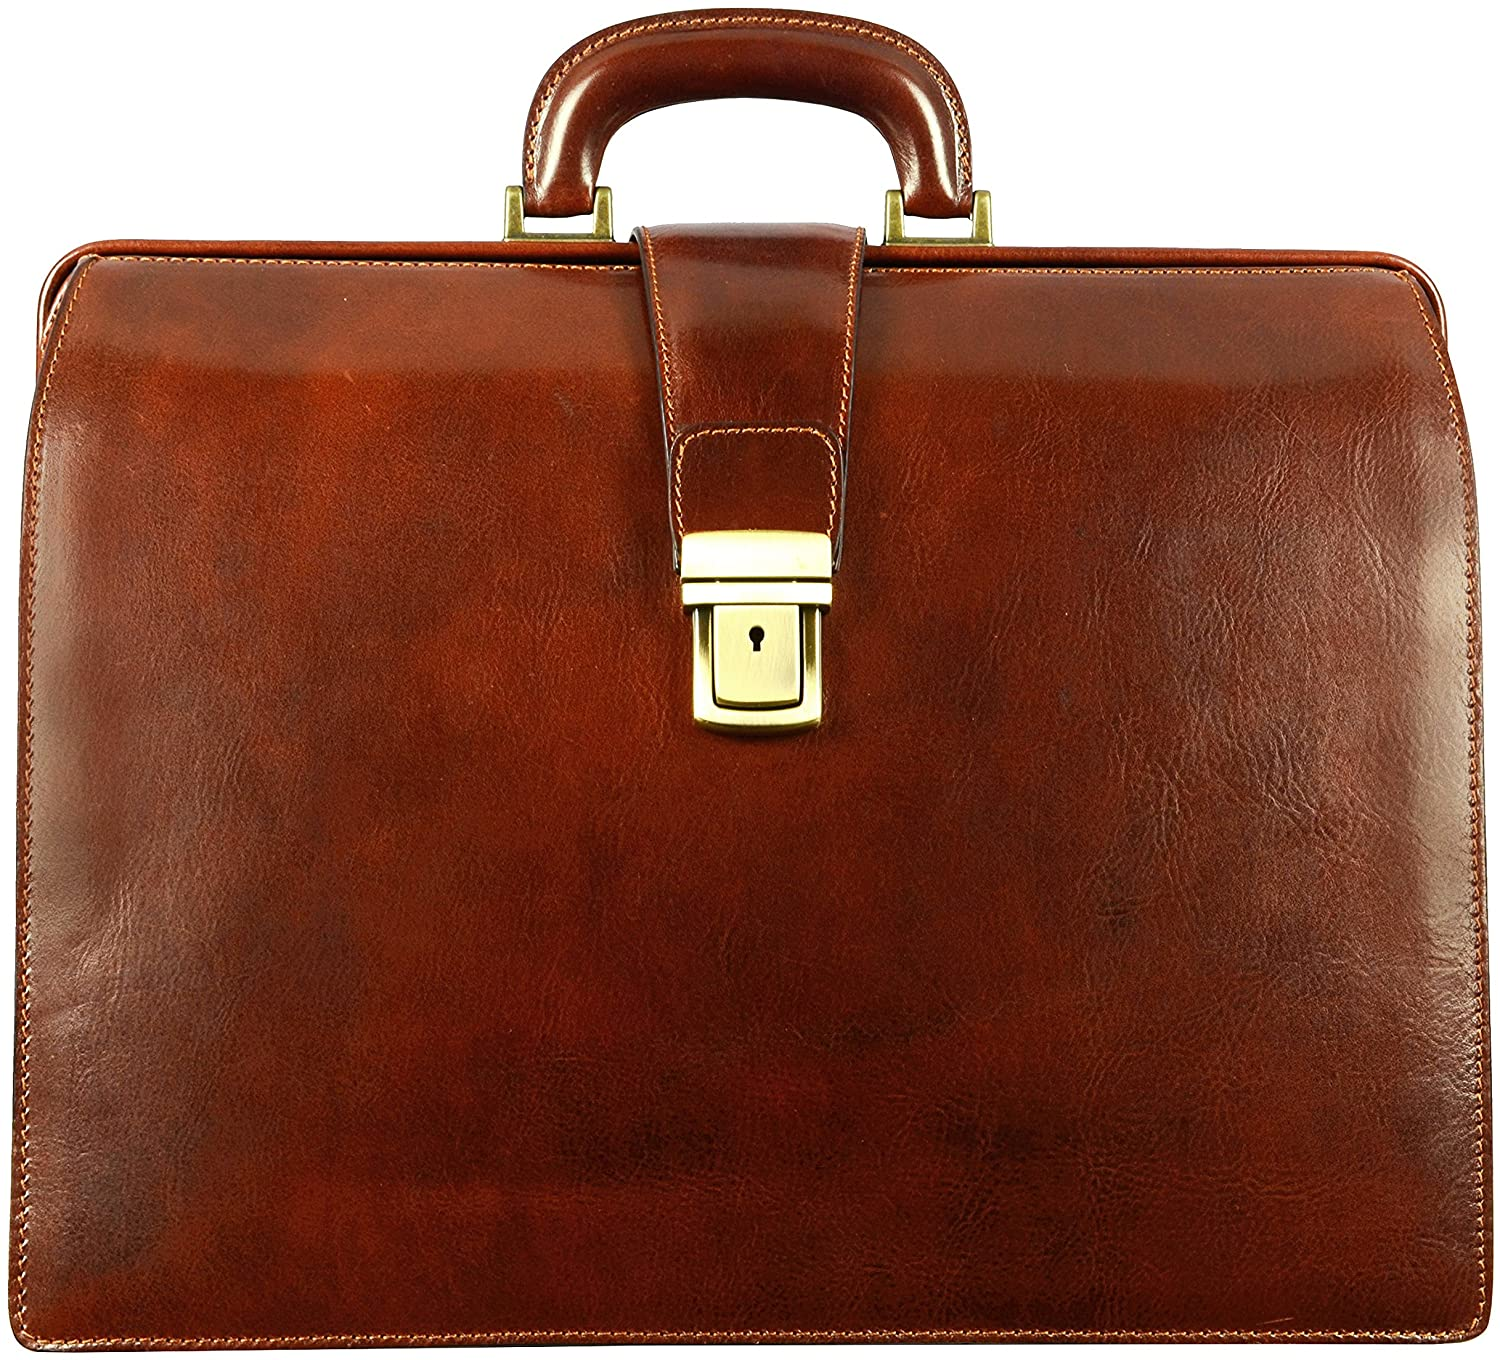 The Attorney laptop leather bag